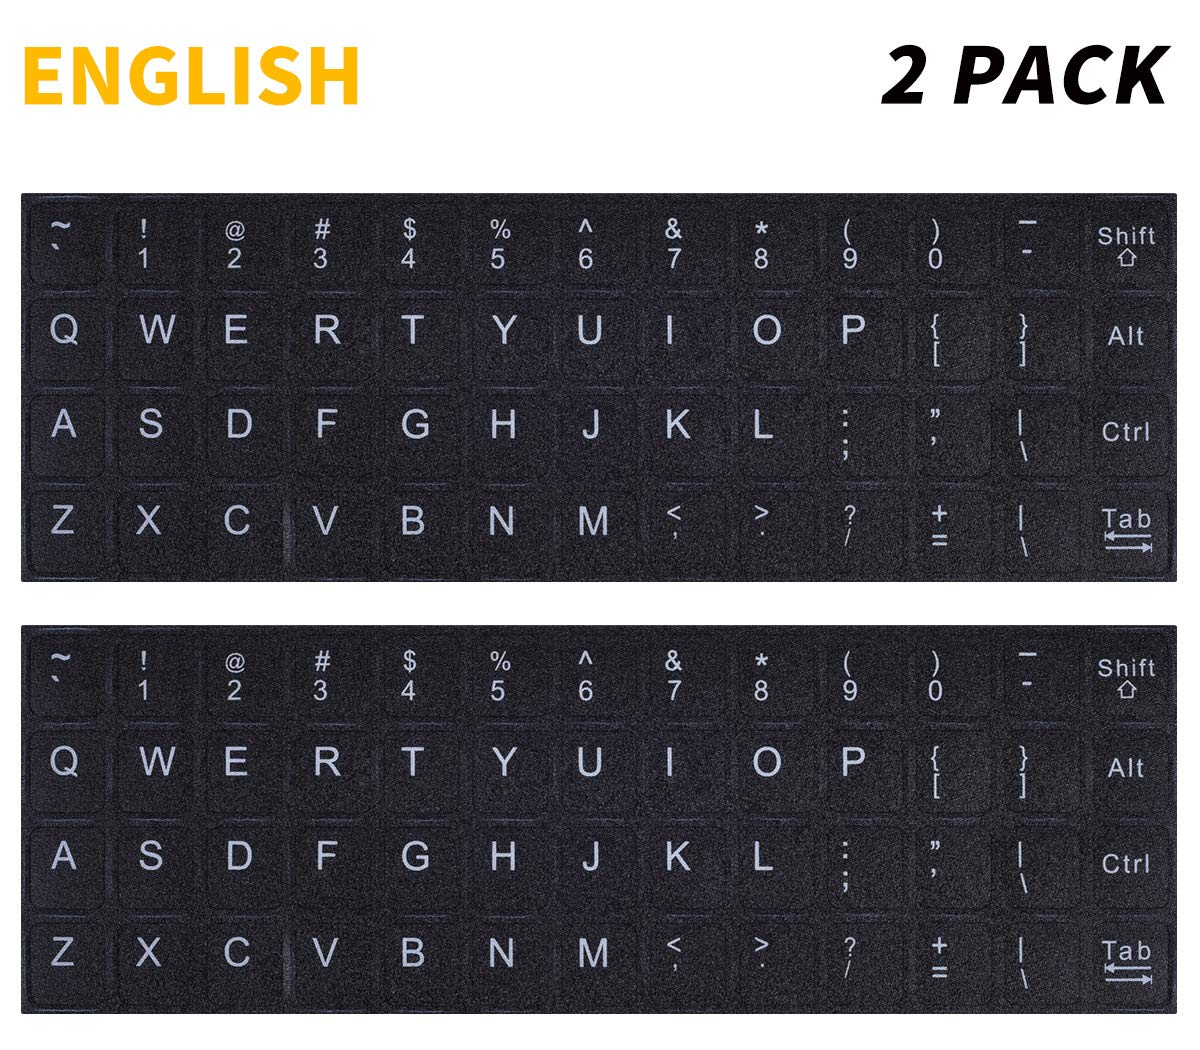 2PCS Pack Universal English Keyboard Stickers, Computer Keyboard Stickers  Black Background with White Lettering for Computer Laptop Notebook Desktop